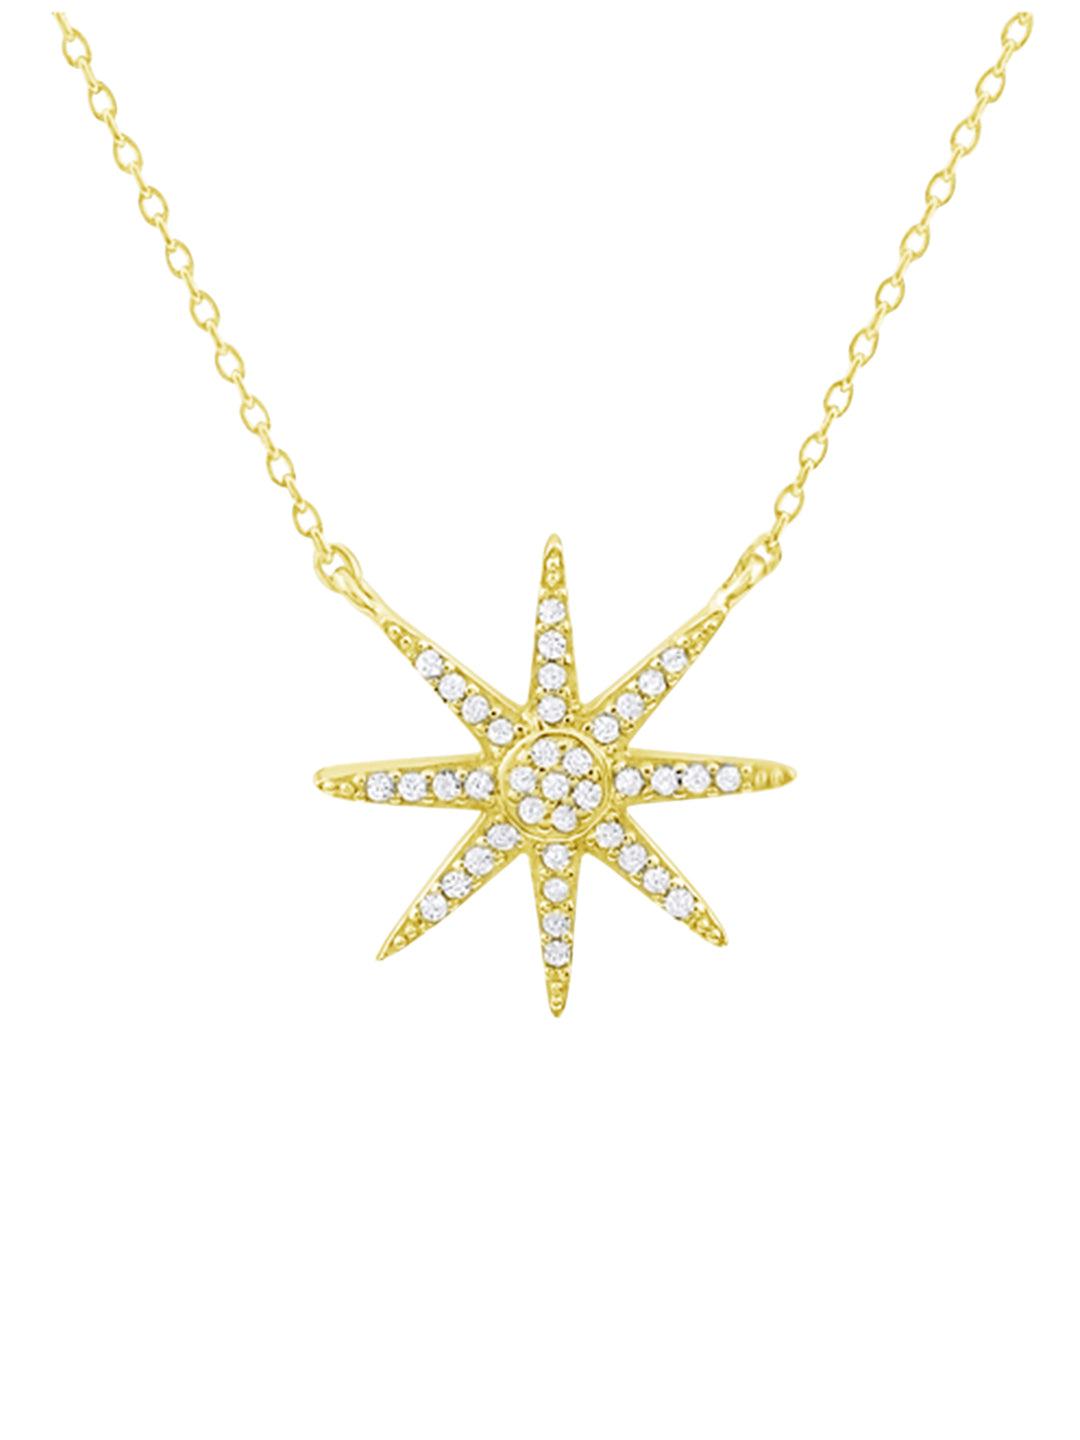 Outreaching Star Necklace